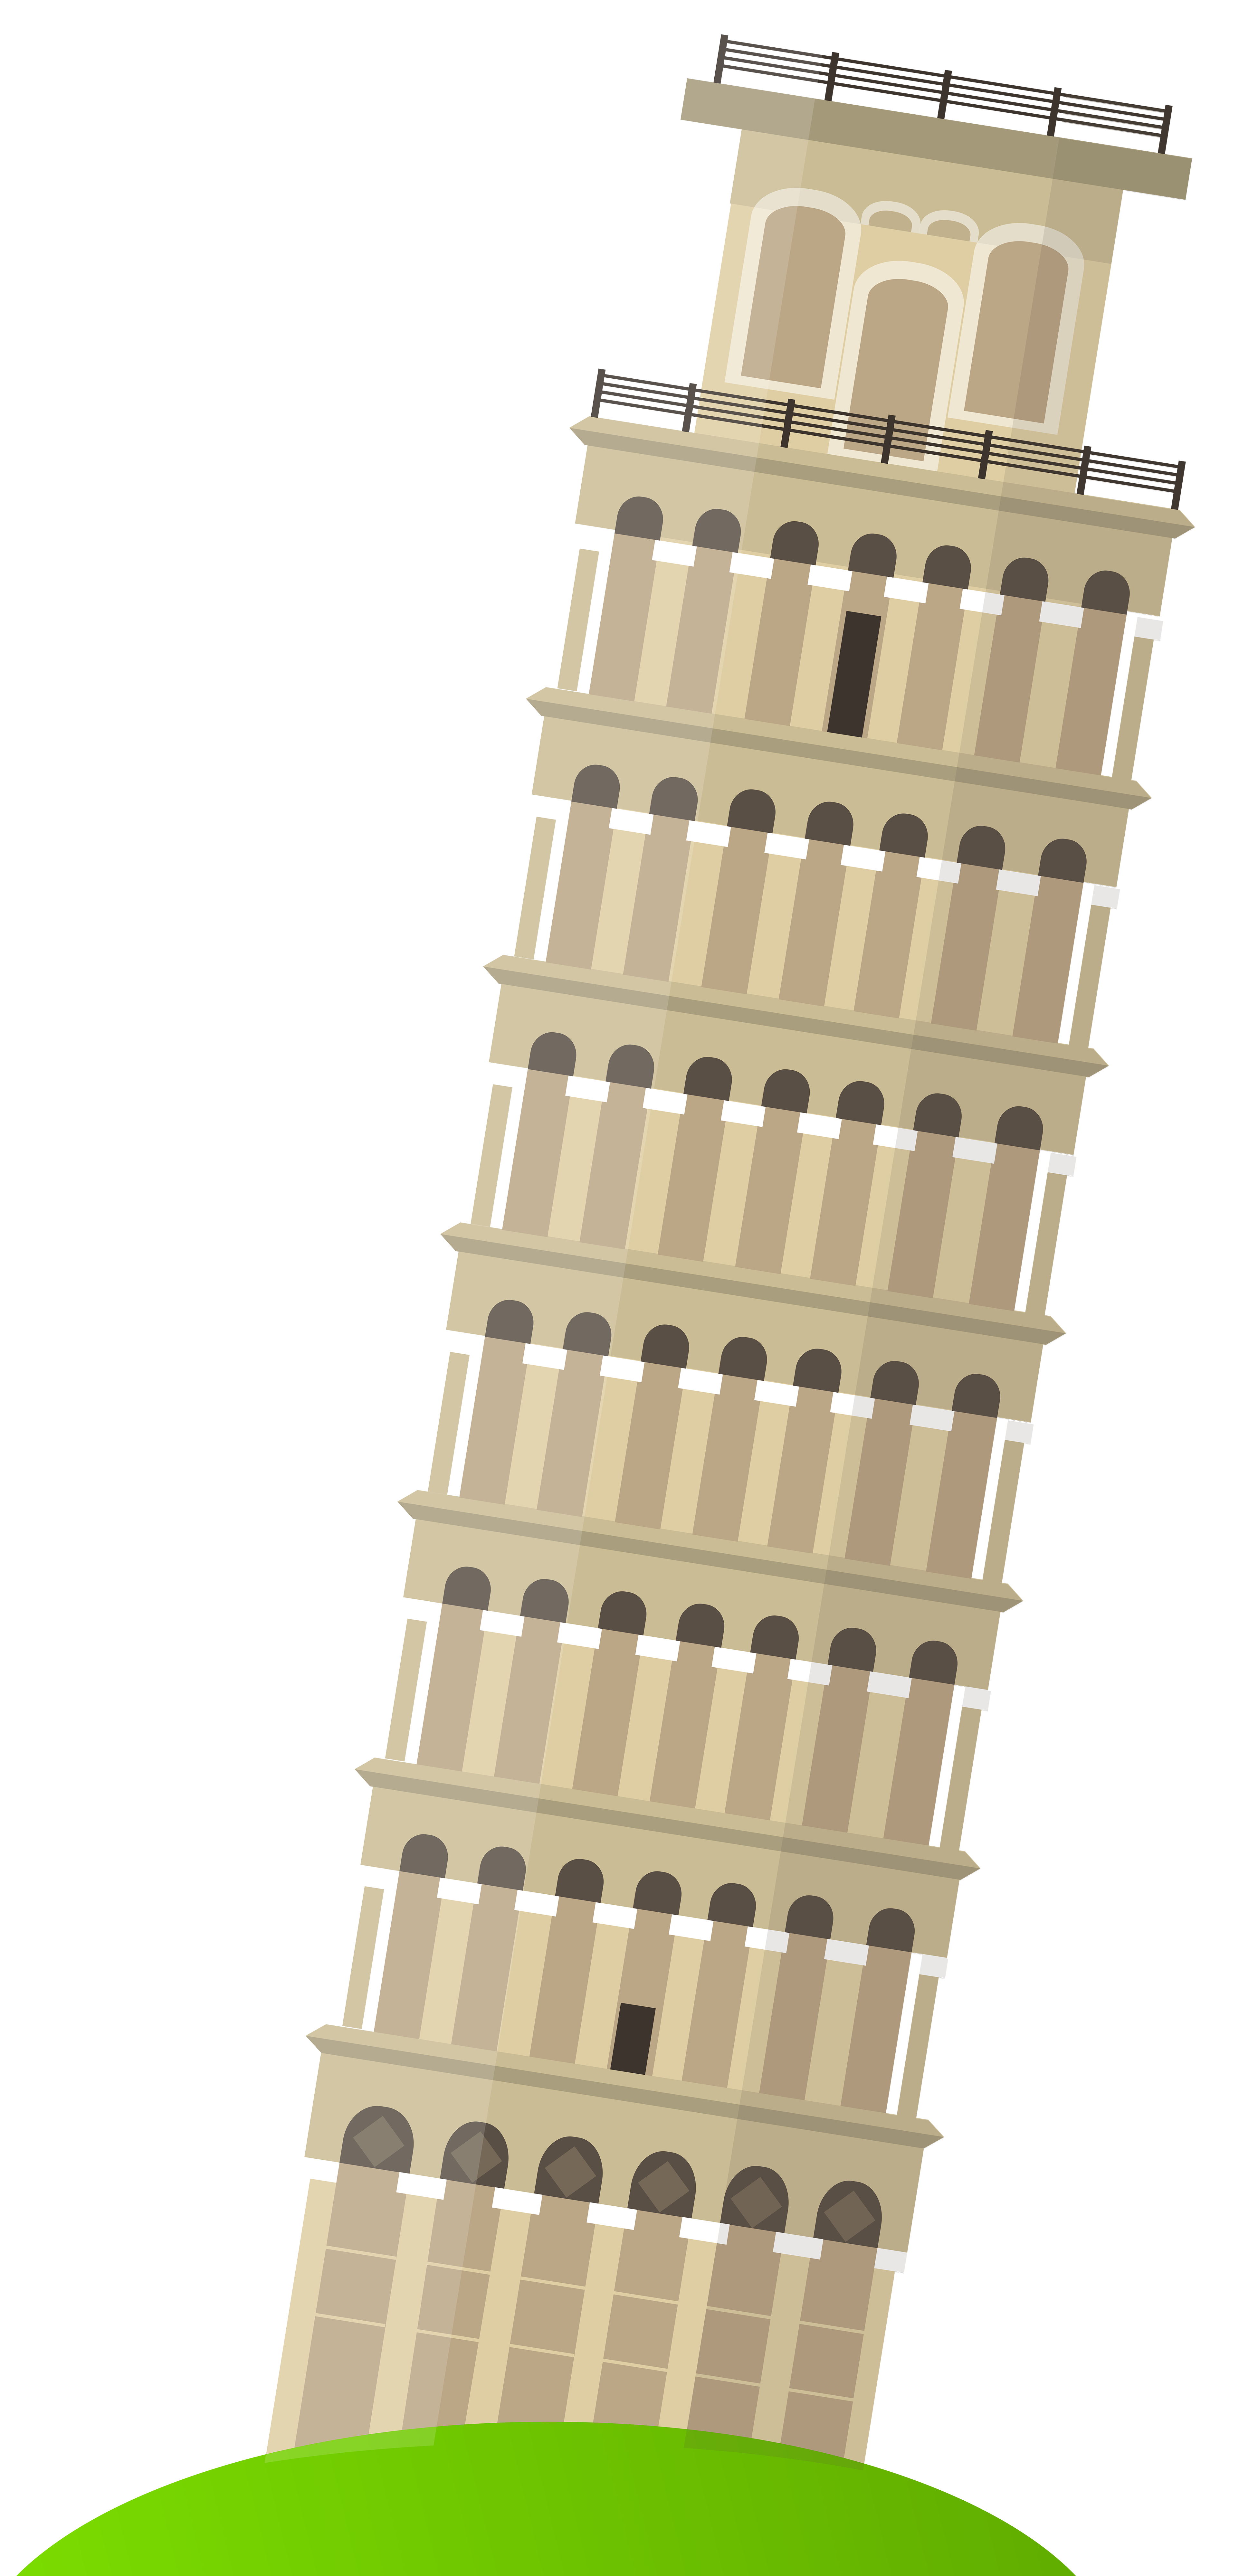 Leaning Tower Of Pisa Png & Free Leaning Tower Of Pisa.png.